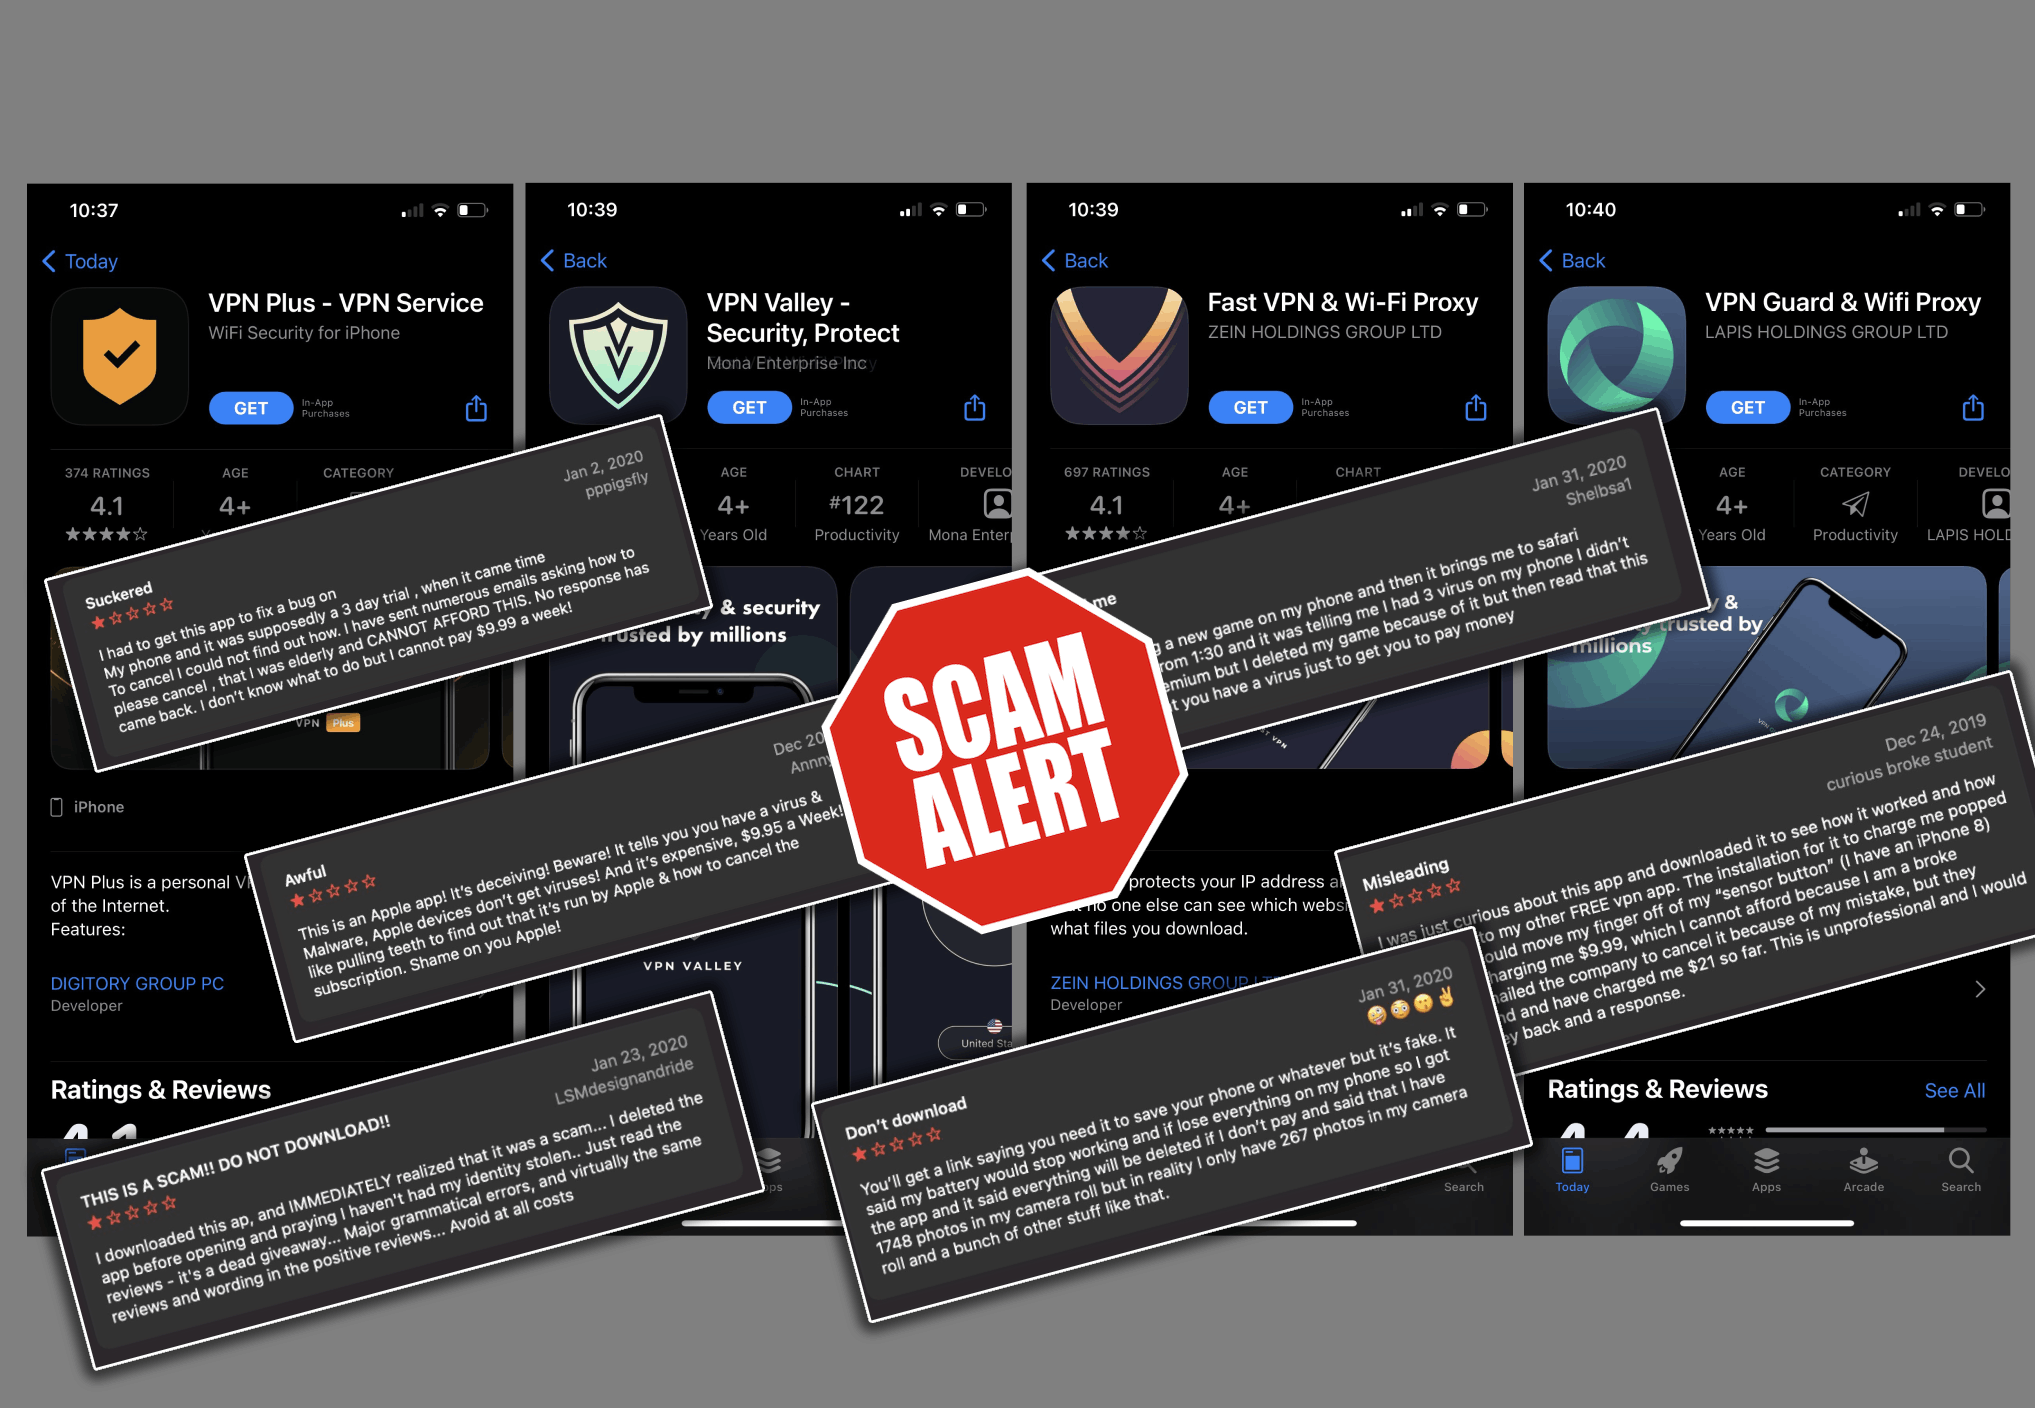 Apple's iPad and iPhone users must be on high alert now as major fleeceware scam apps in the VPN category have been detected on the App Store